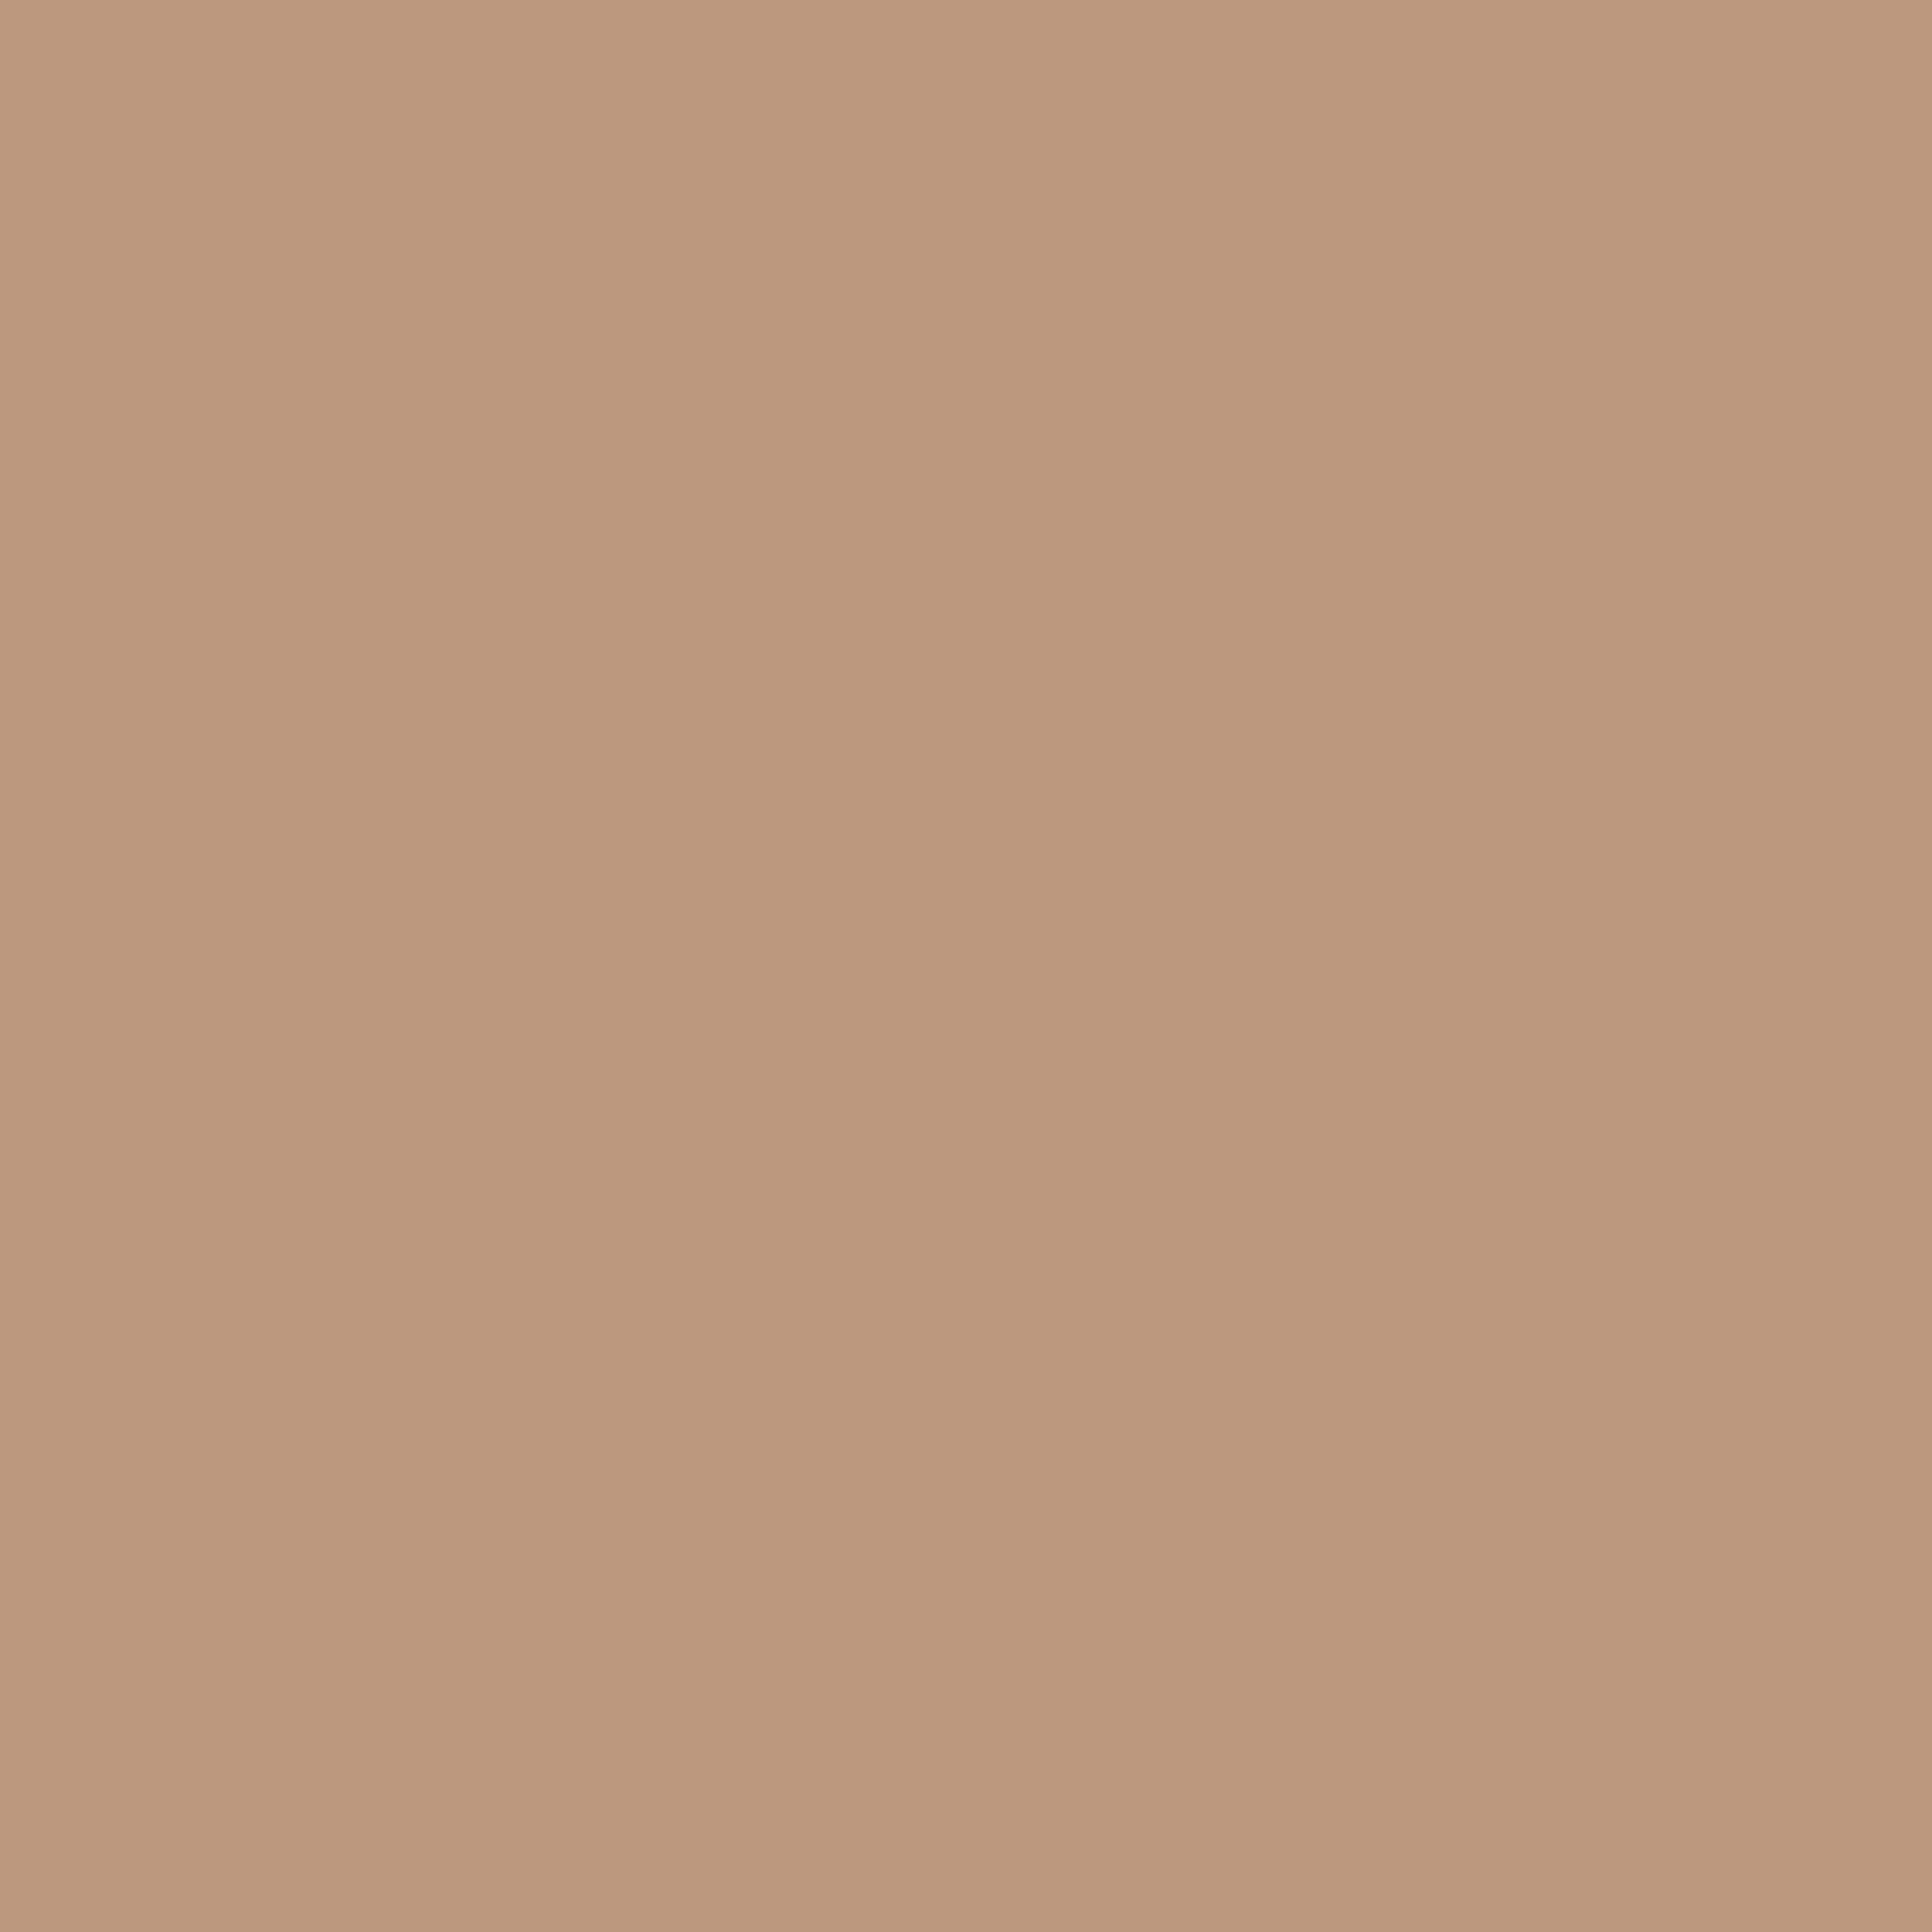 2732x2732 Pale Taupe Solid Color Background